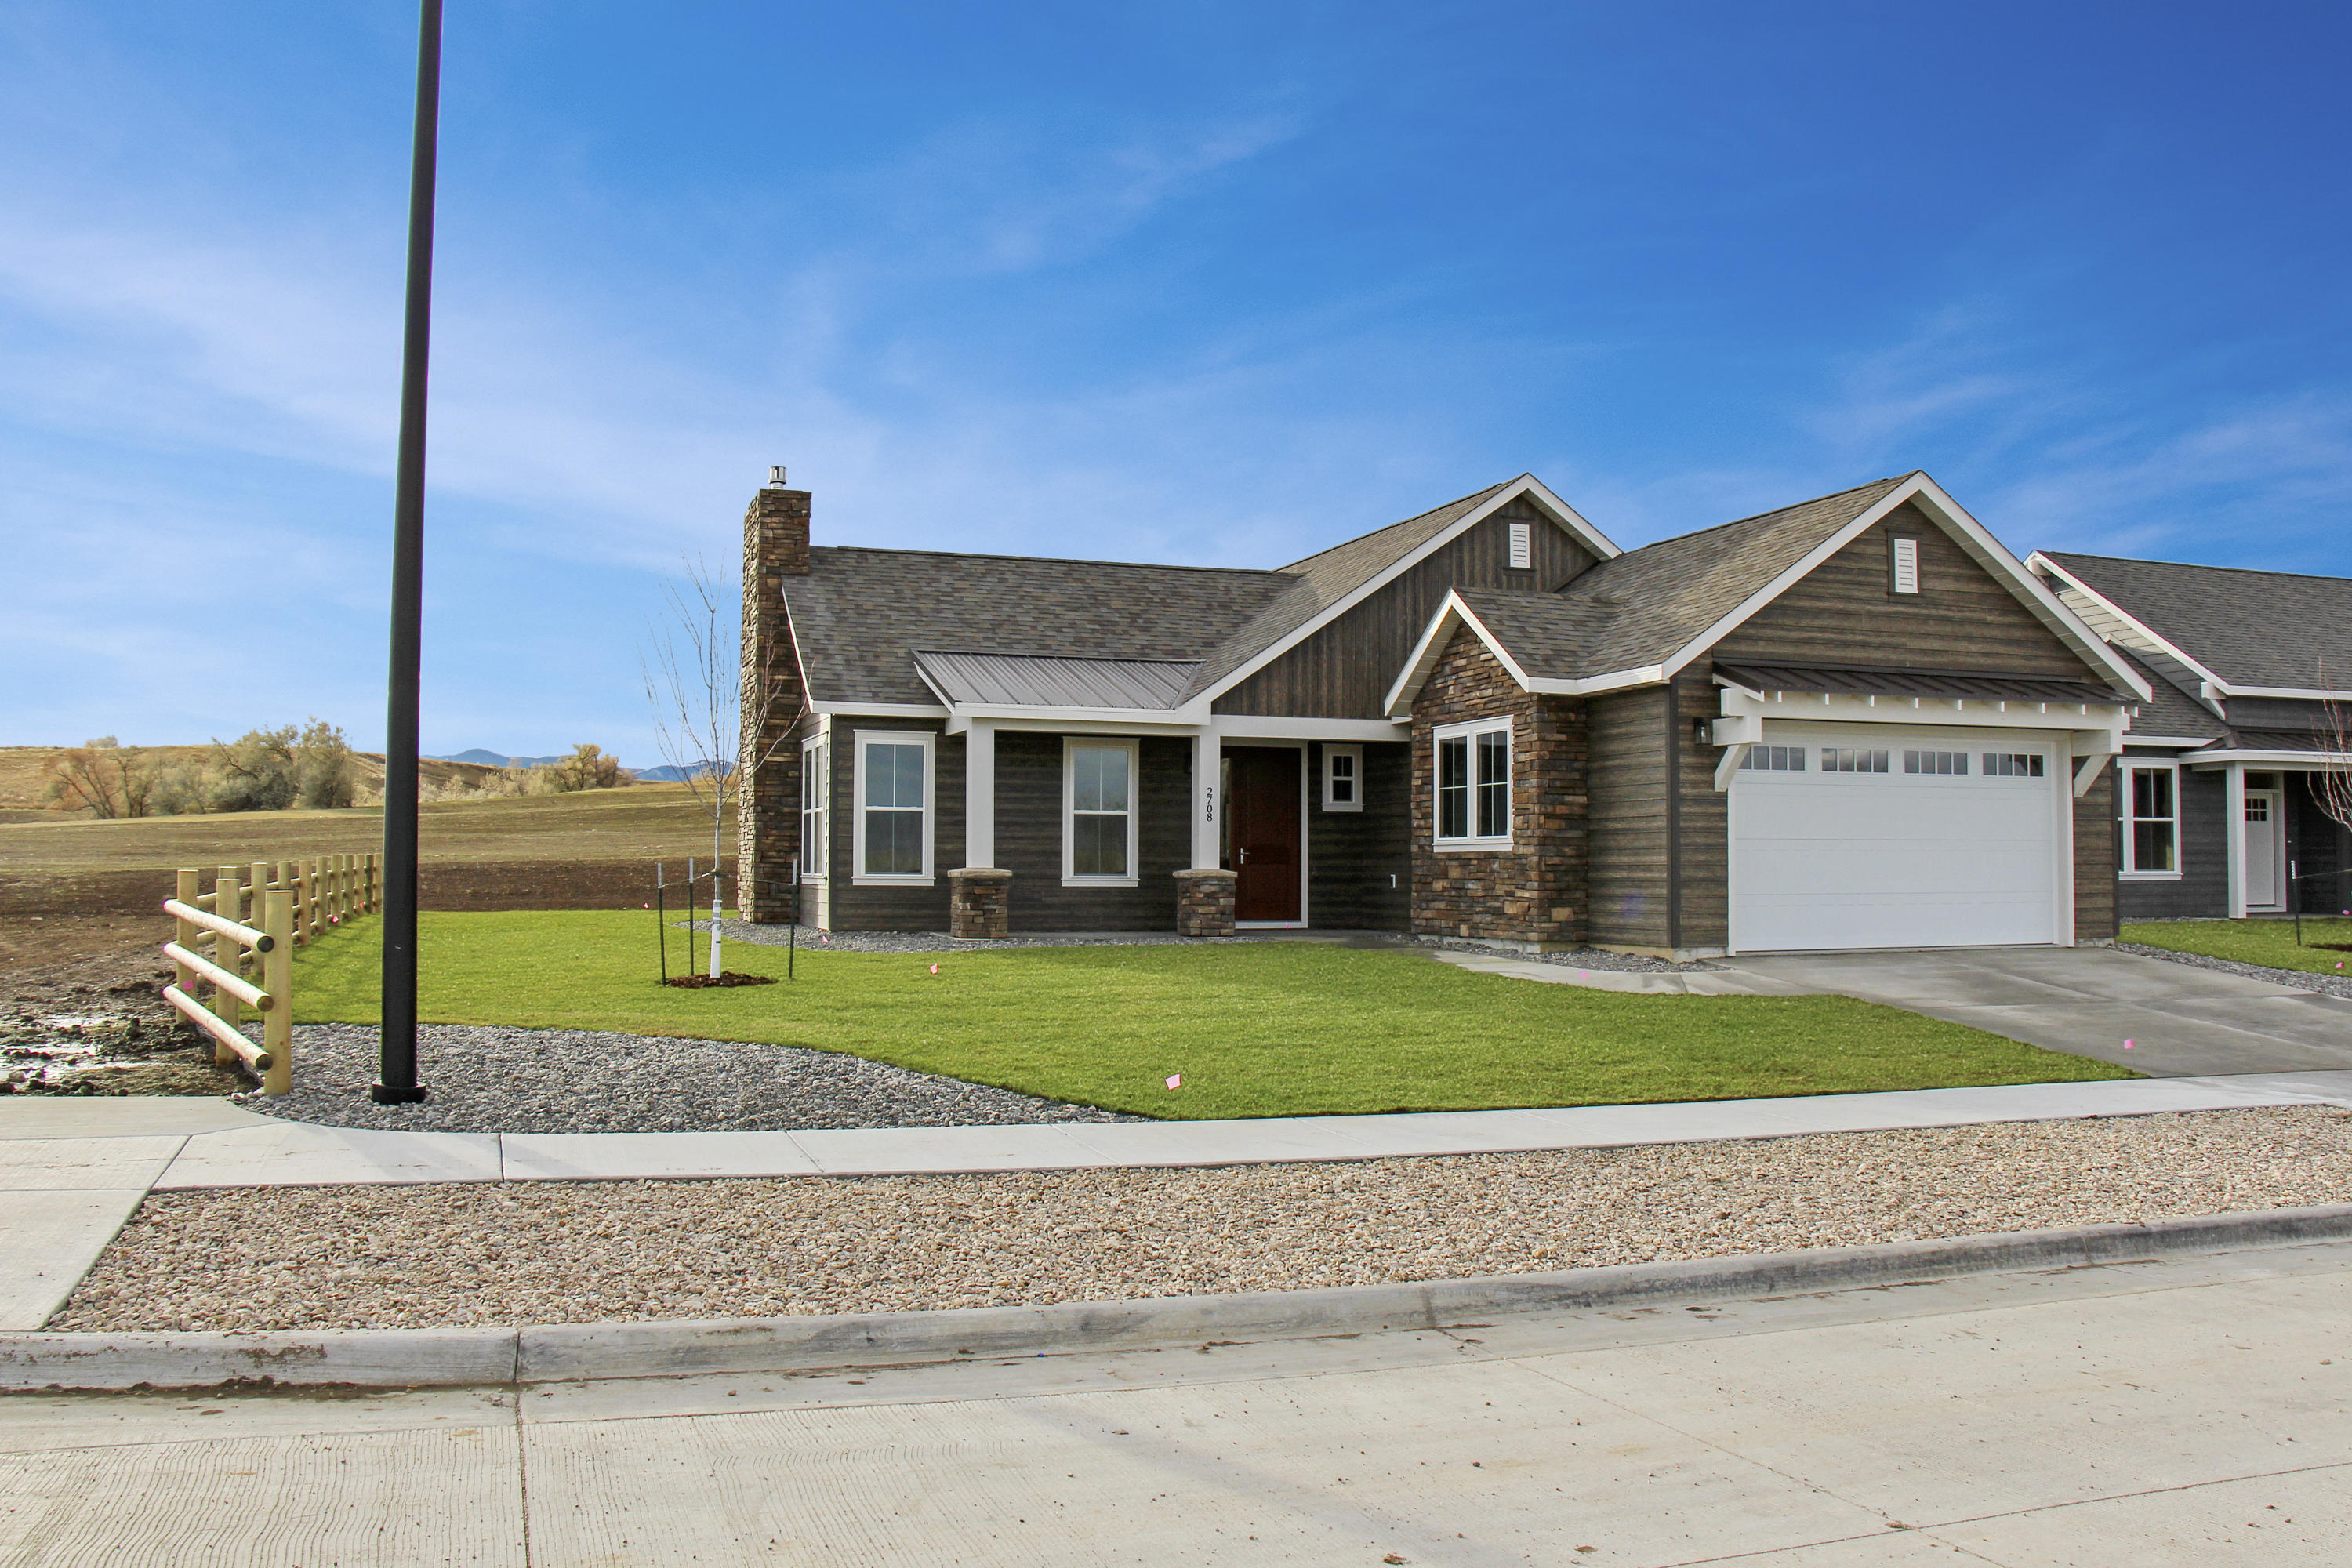 2708 Morrison Ranch Road, Sheridan, Wyoming 82801, 3 Bedrooms Bedrooms, ,2.5 BathroomsBathrooms,Residential,For Sale,Morrison Ranch,18-1198